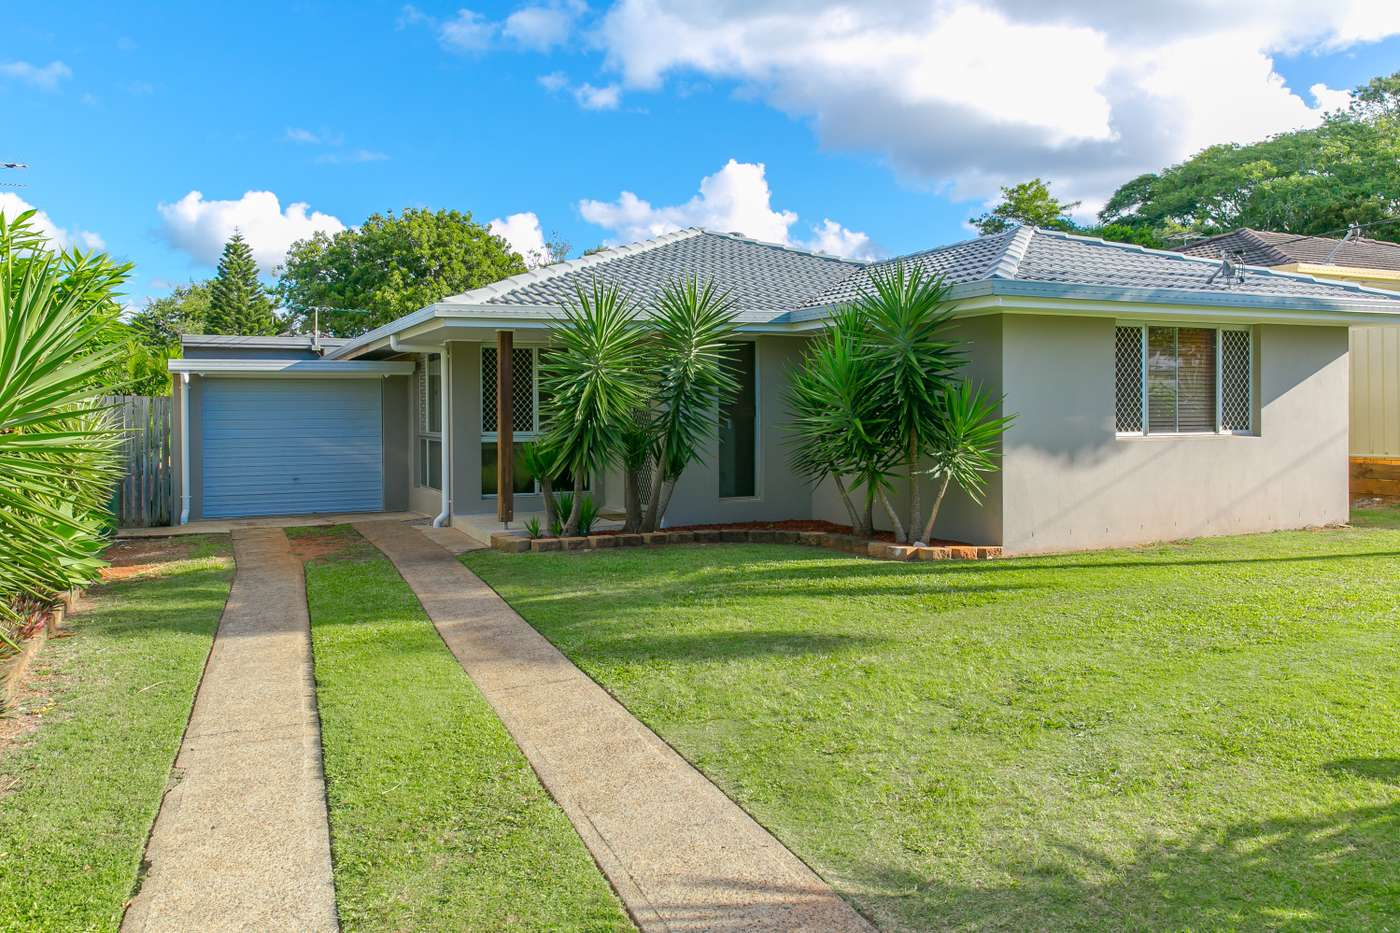 Main view of Homely house listing, 27 Warner Street, Wellington Point, QLD 4160